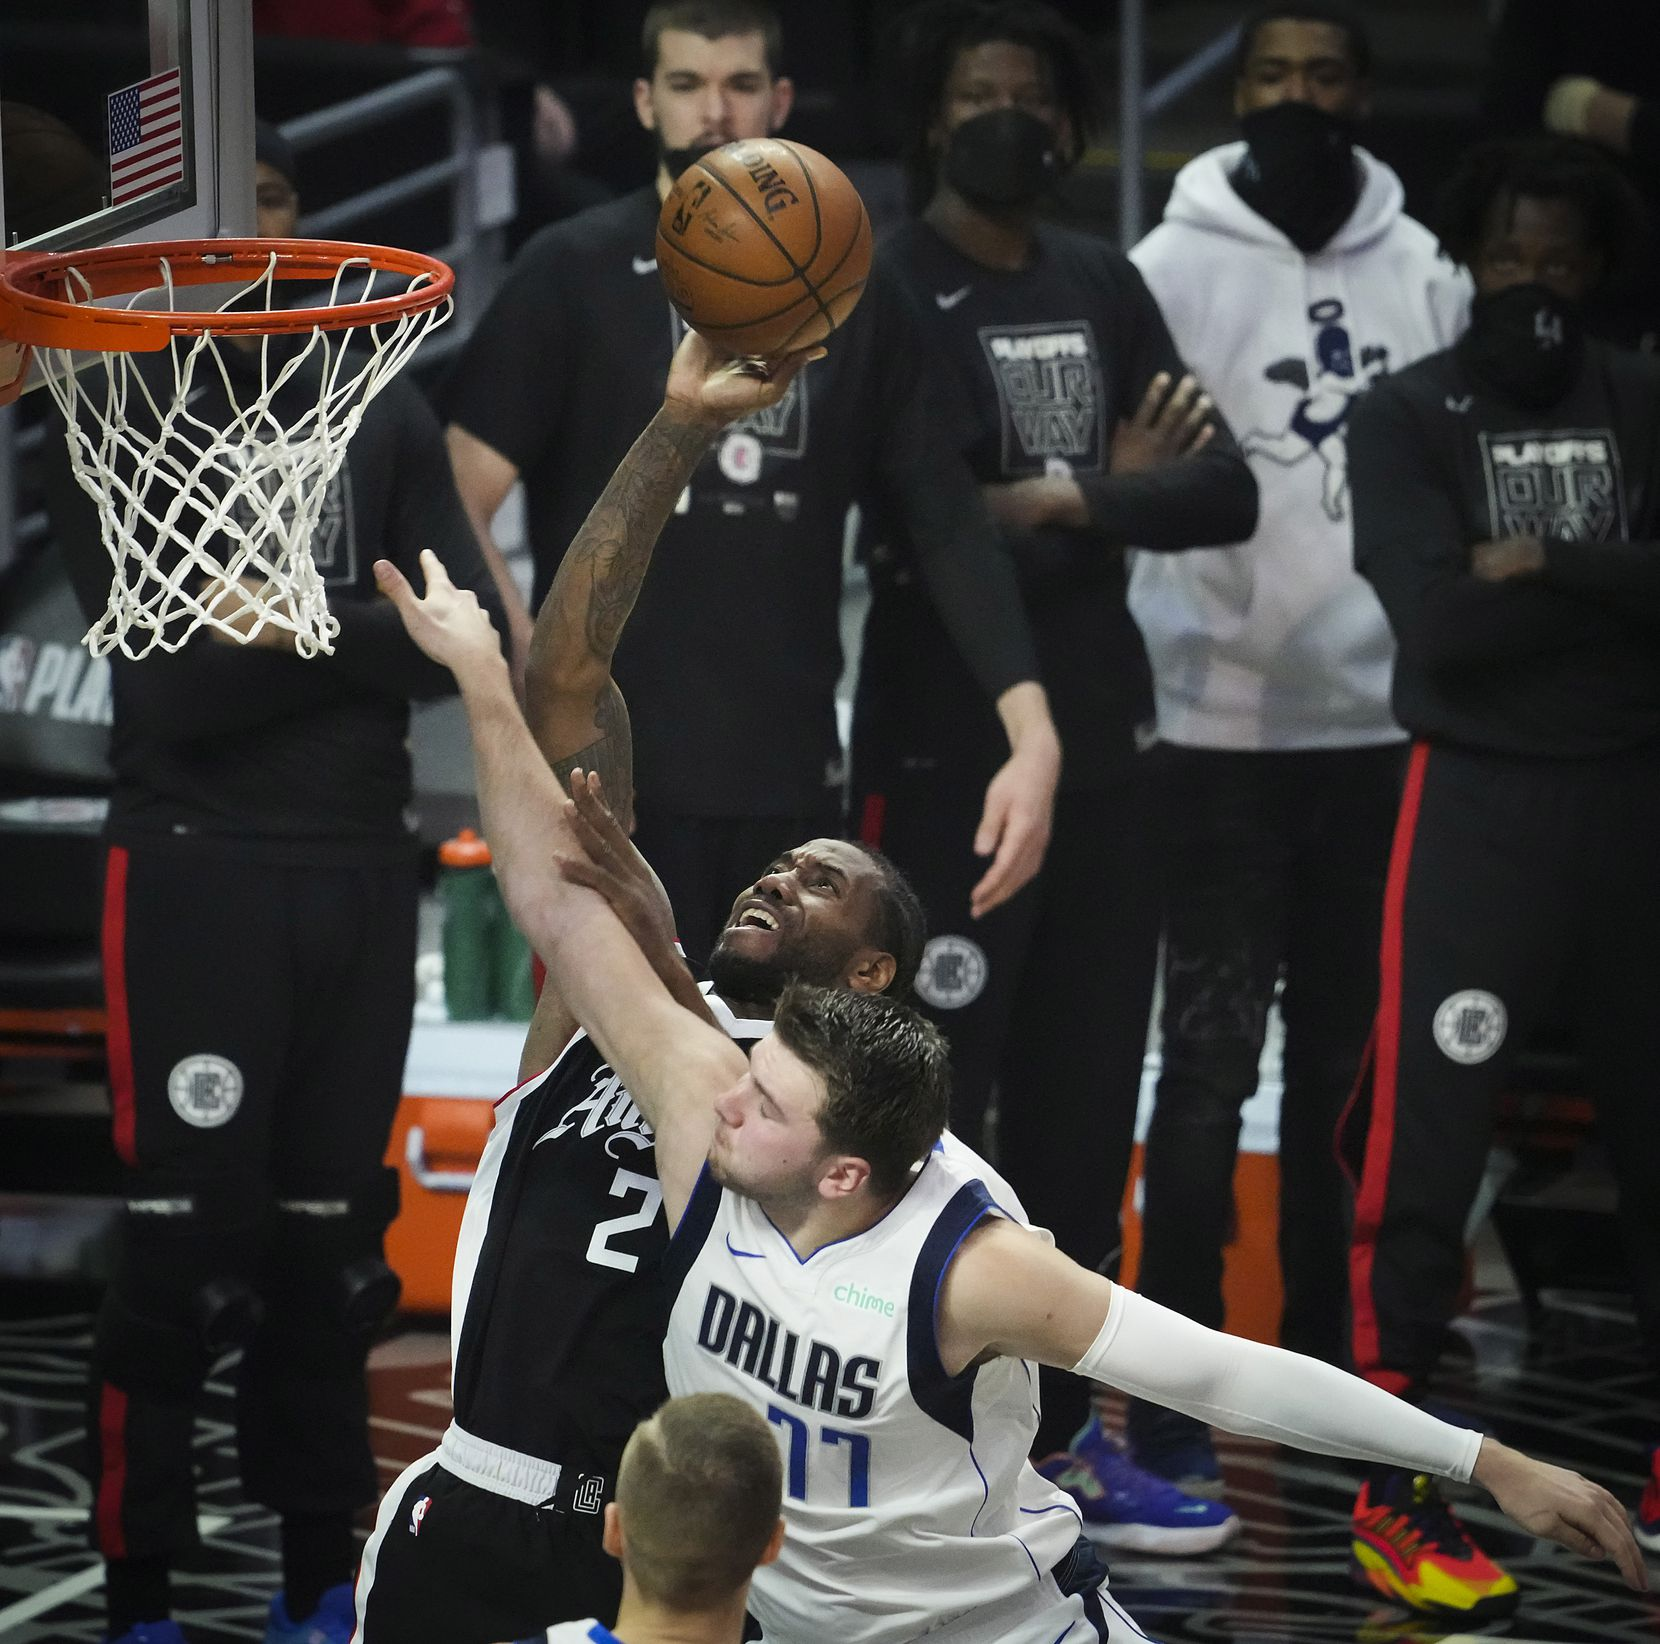 LA Clippers forward Kawhi Leonard (2) scores past Dallas Mavericks guard Luka Doncic (77) during the first quarter of Game 7 of an NBA playoff series at the Staples Center on Sunday, June 6, 2021, in Los Angeles.